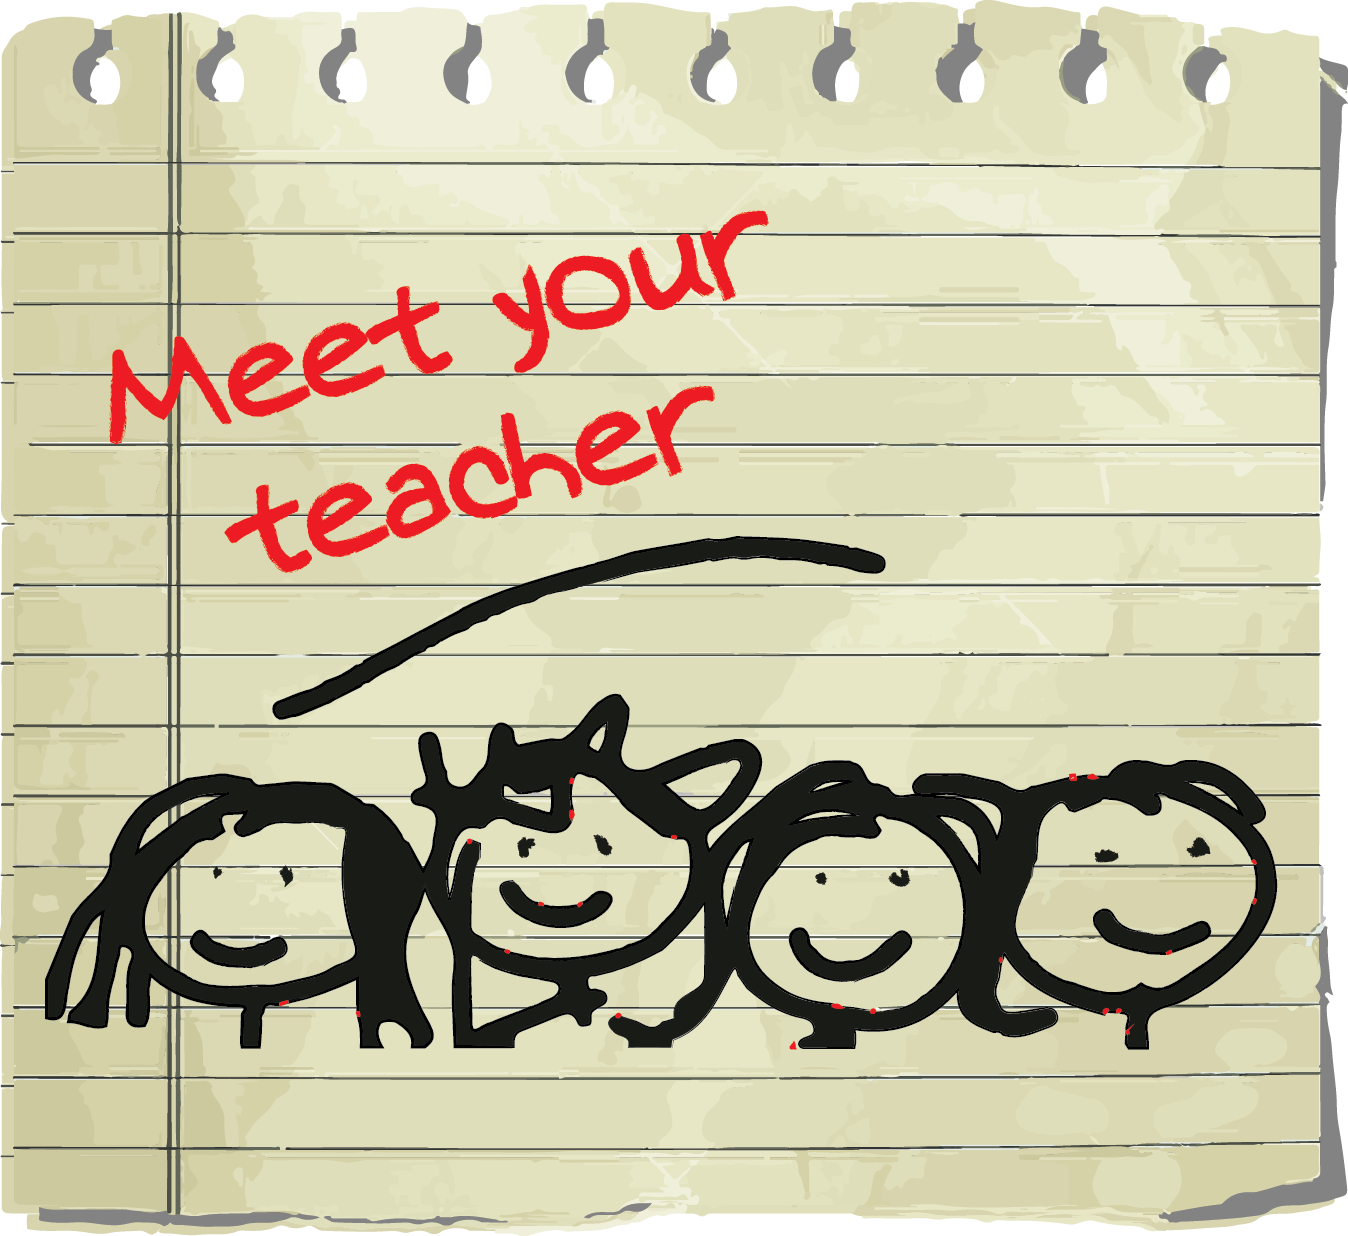 icon_rmeetTeacher2.png